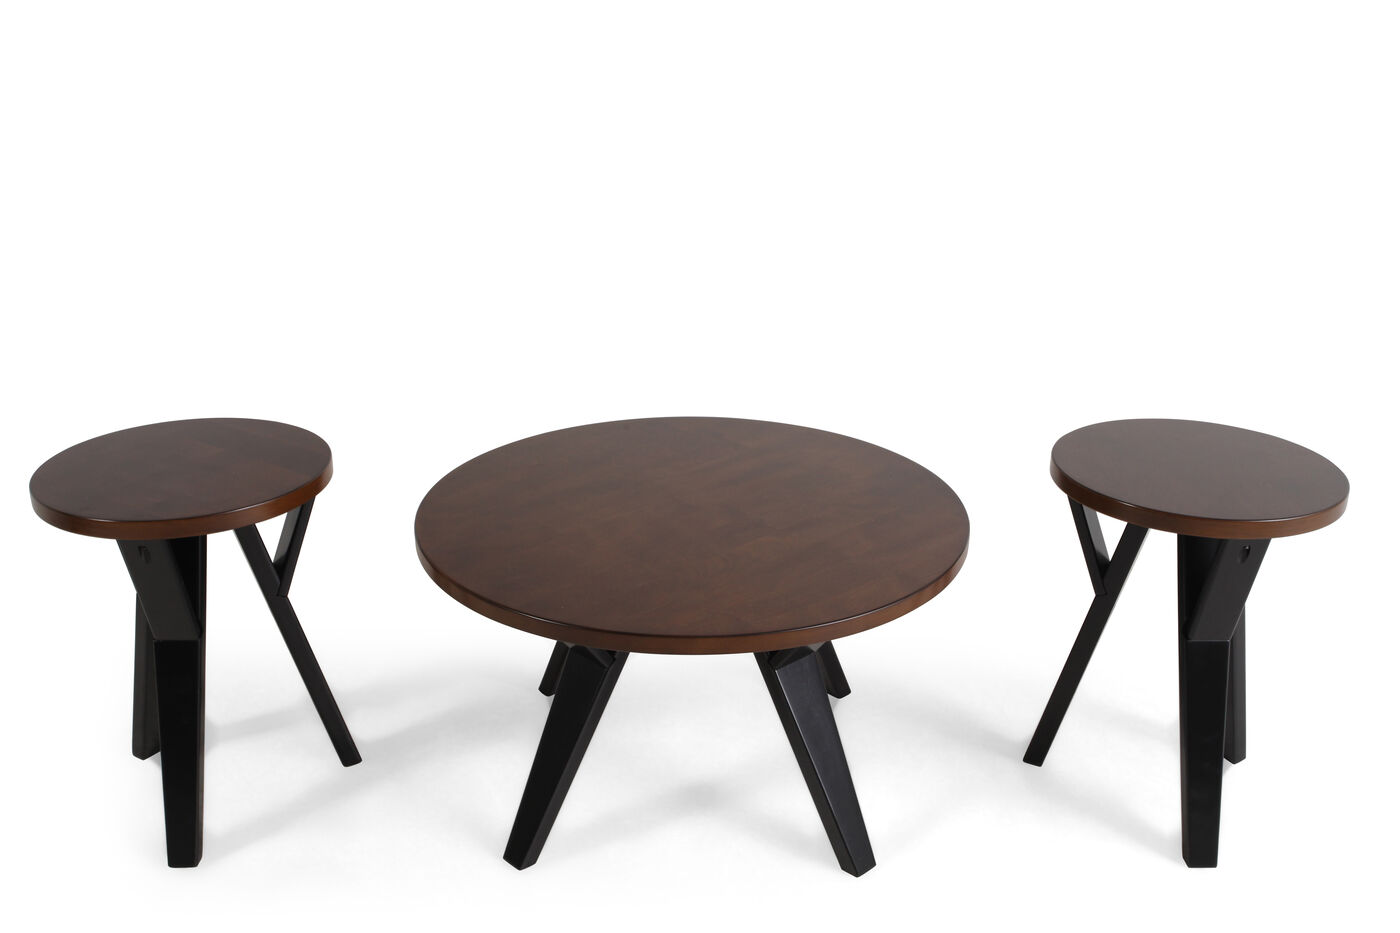 Three piece round contemporary table set in brown mathis brothers furniture for Round living room table sets